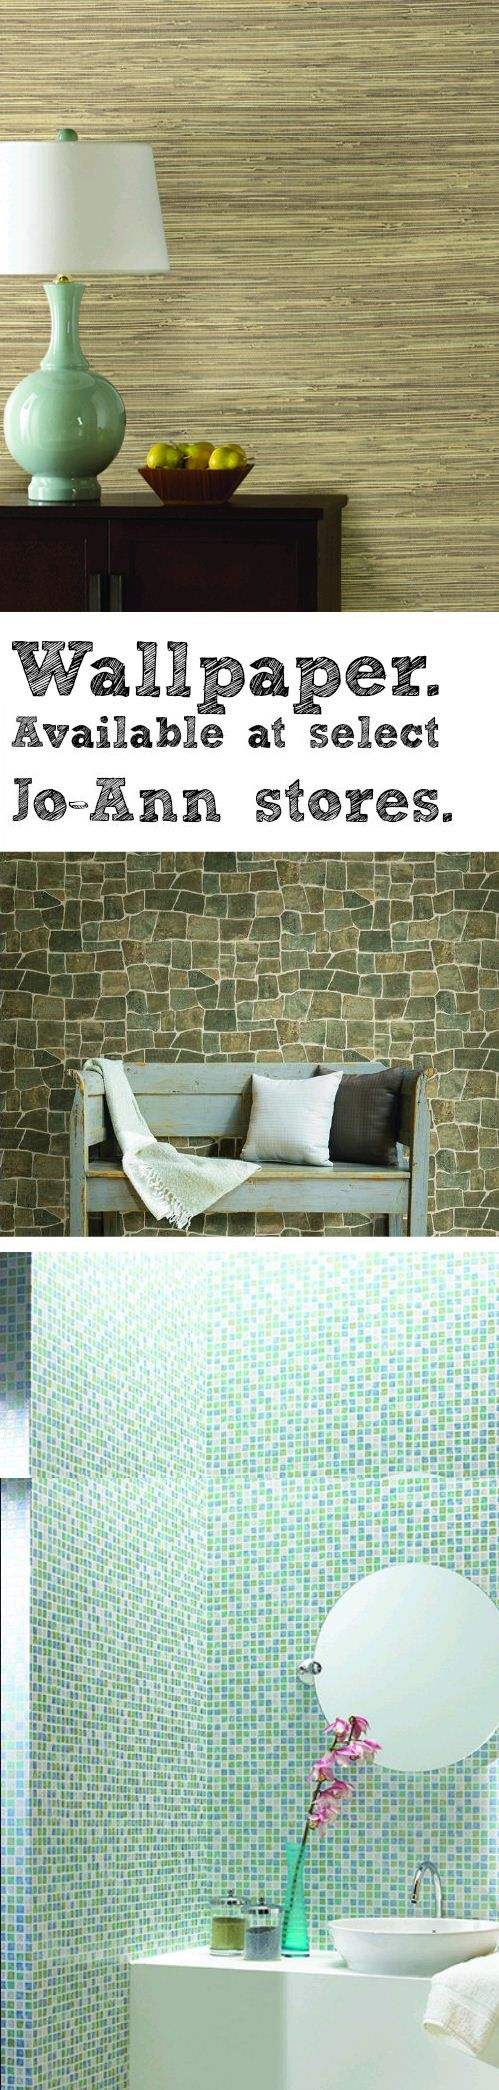 After taking a 20 year vacation, wallpaper is back on trend. And available at select local Jo-Ann stores. Vacation was good to it, this wallpaper has attitude.